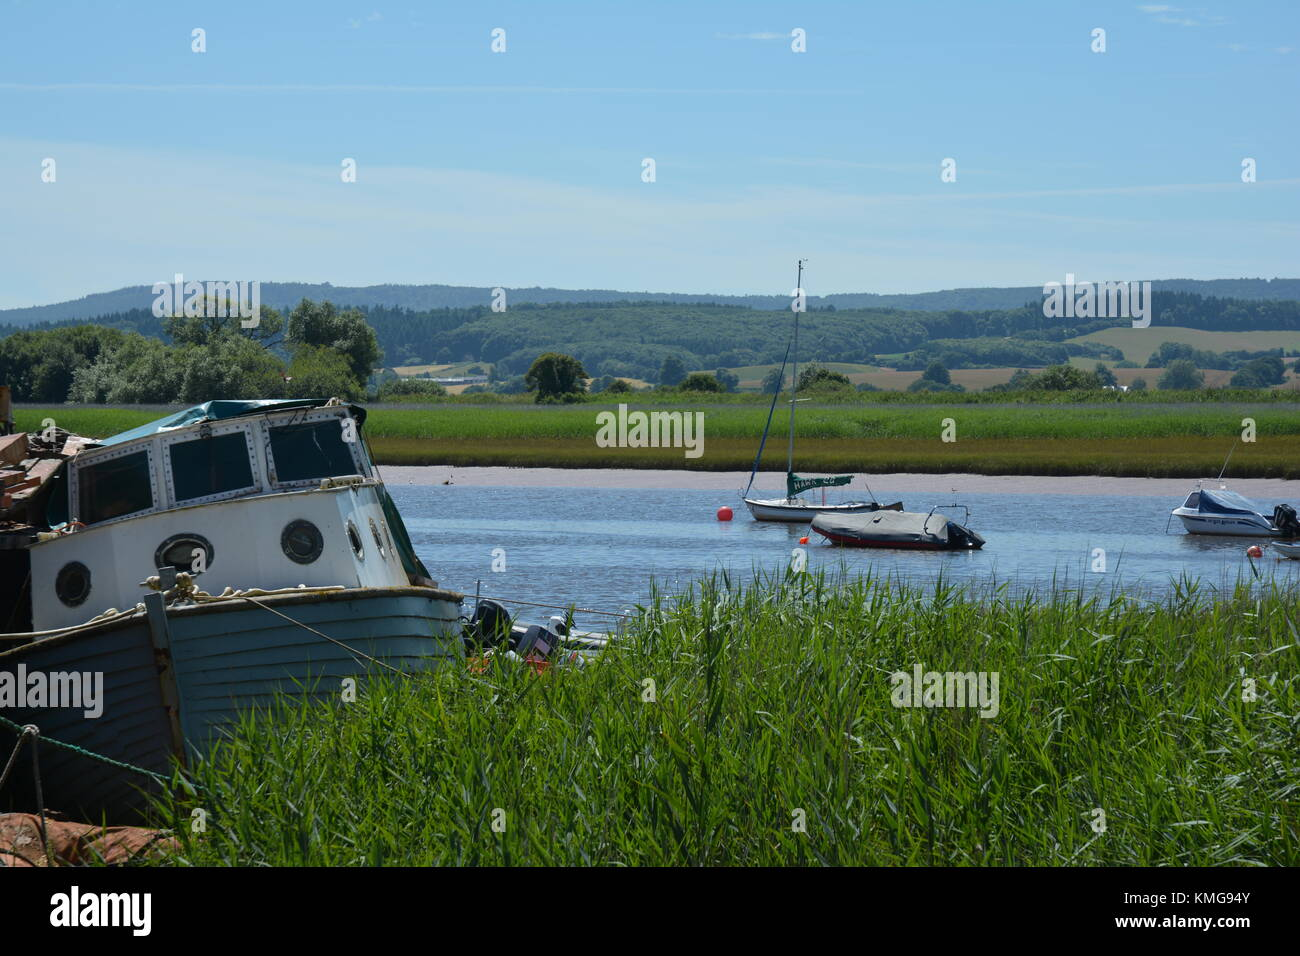 Boats on the River Exe at Topsham, Devon - Stock Image